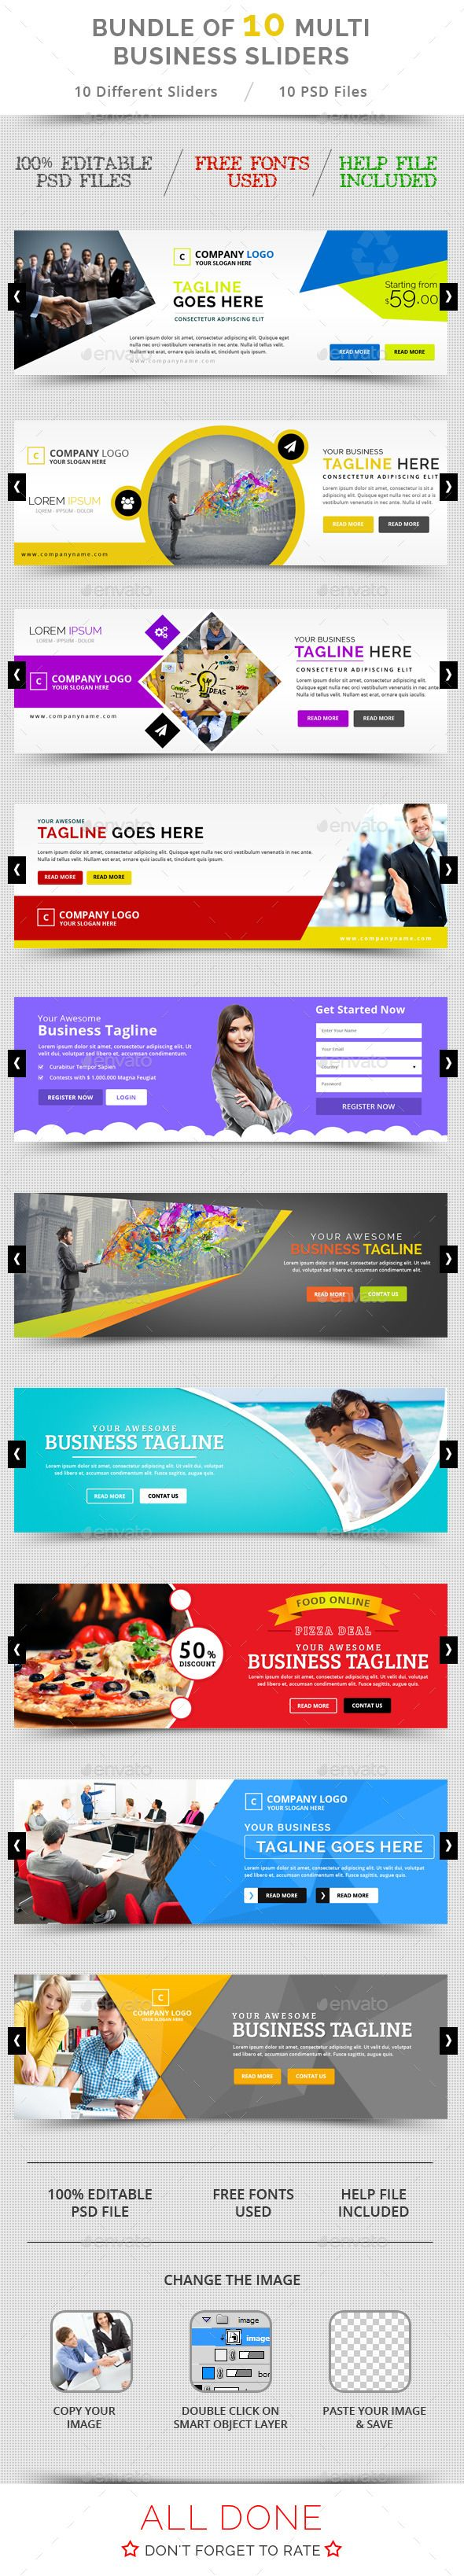 Bundle of 10 Multi Business Sliders Templates PSD. Download here…